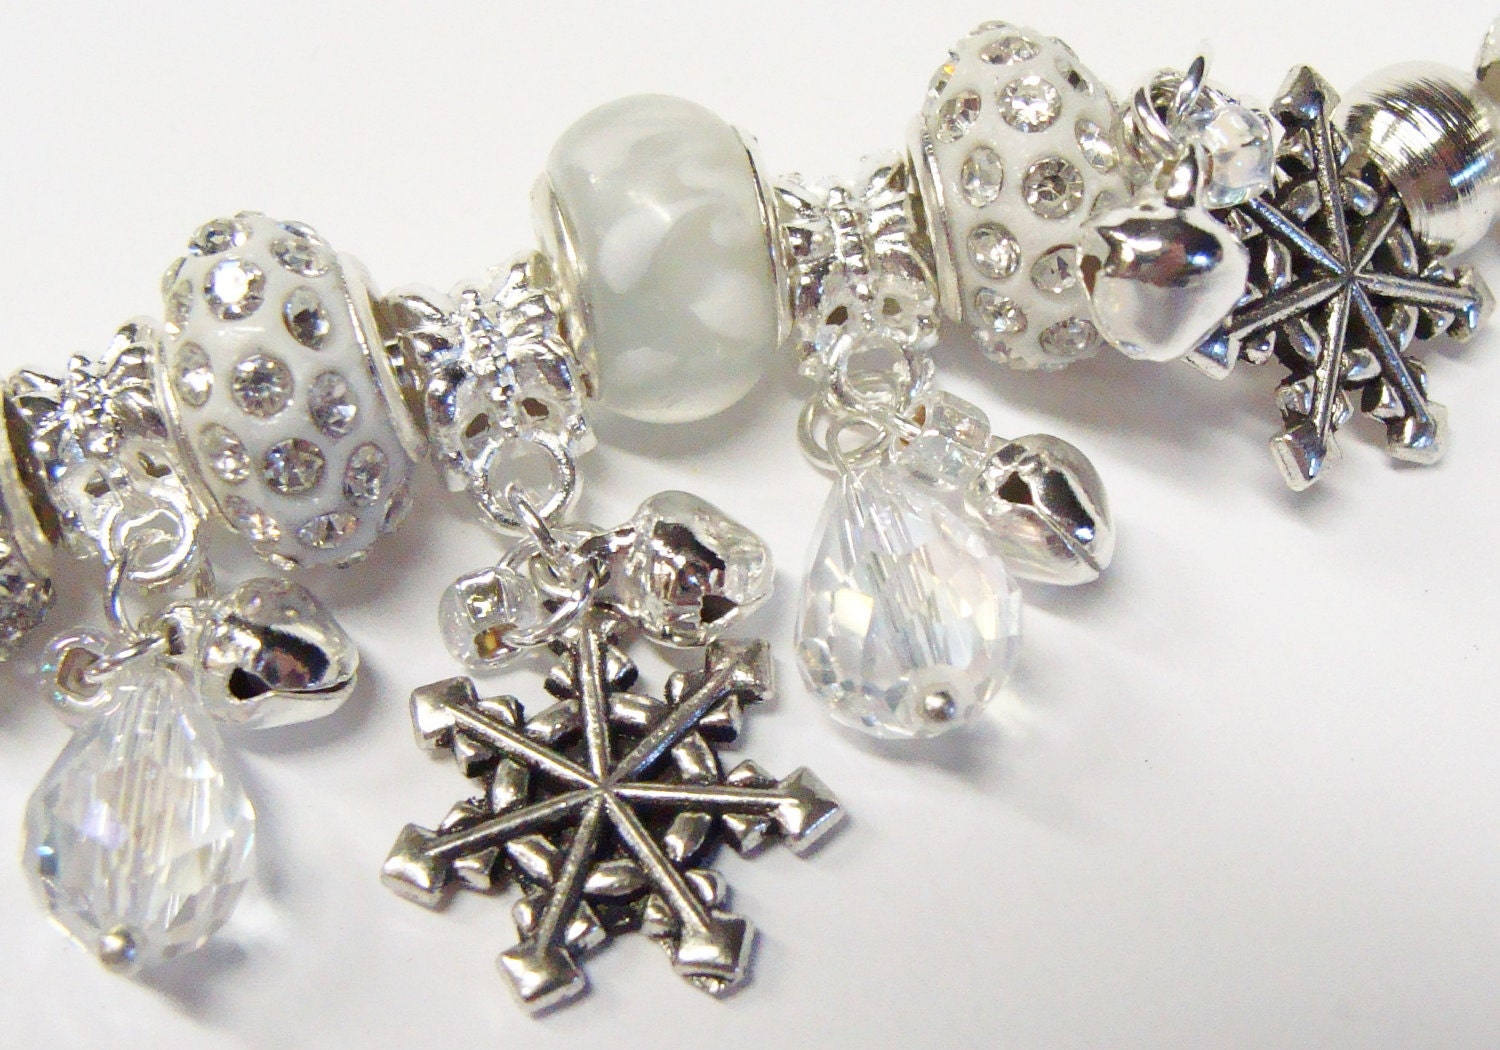 Winter Wonderland with Crystals and Snowflakes